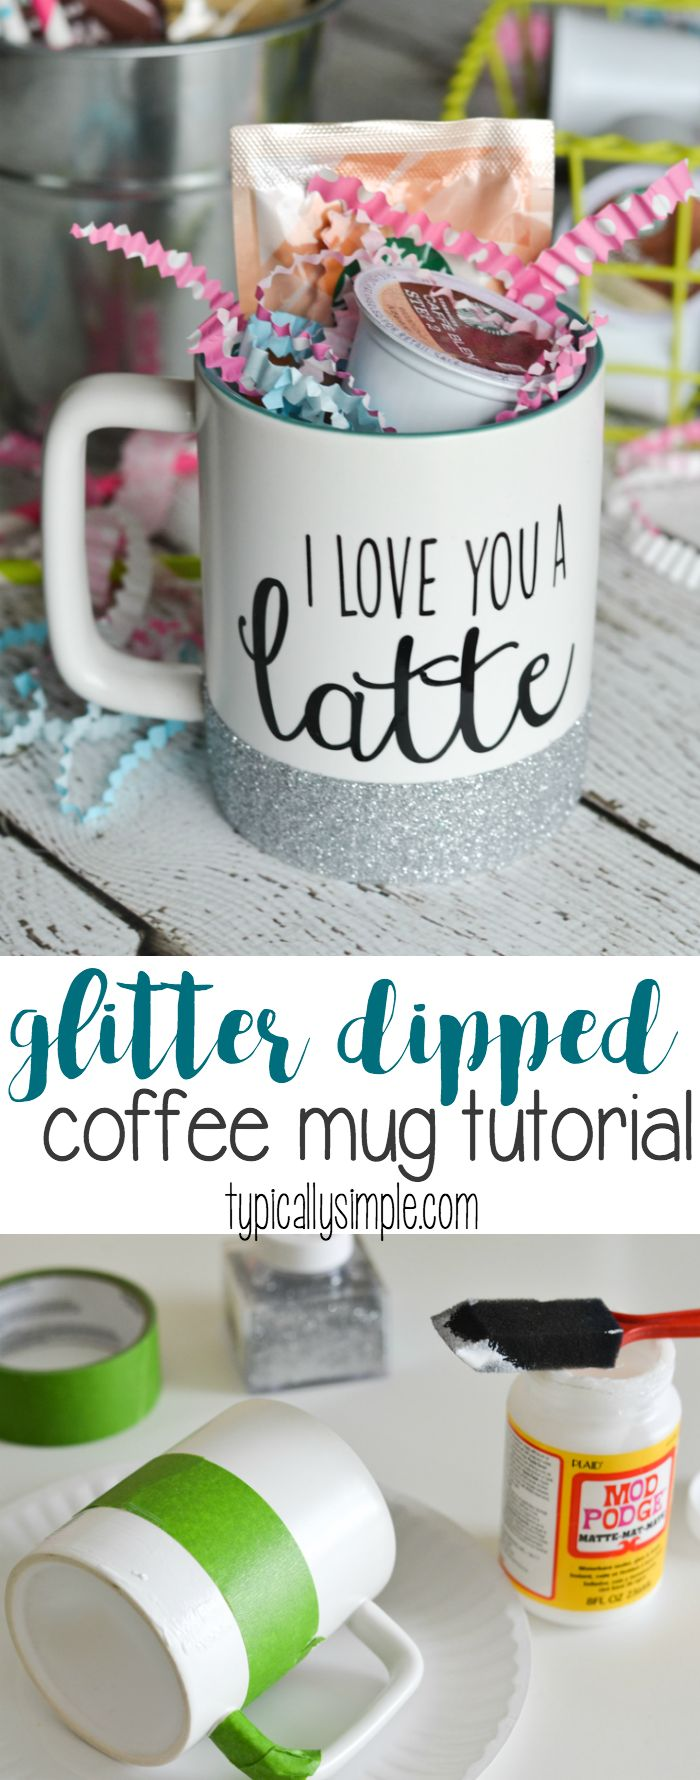 The 25 best coffee mugs ideas on pinterest mugs cute for Coffee mug craft kit